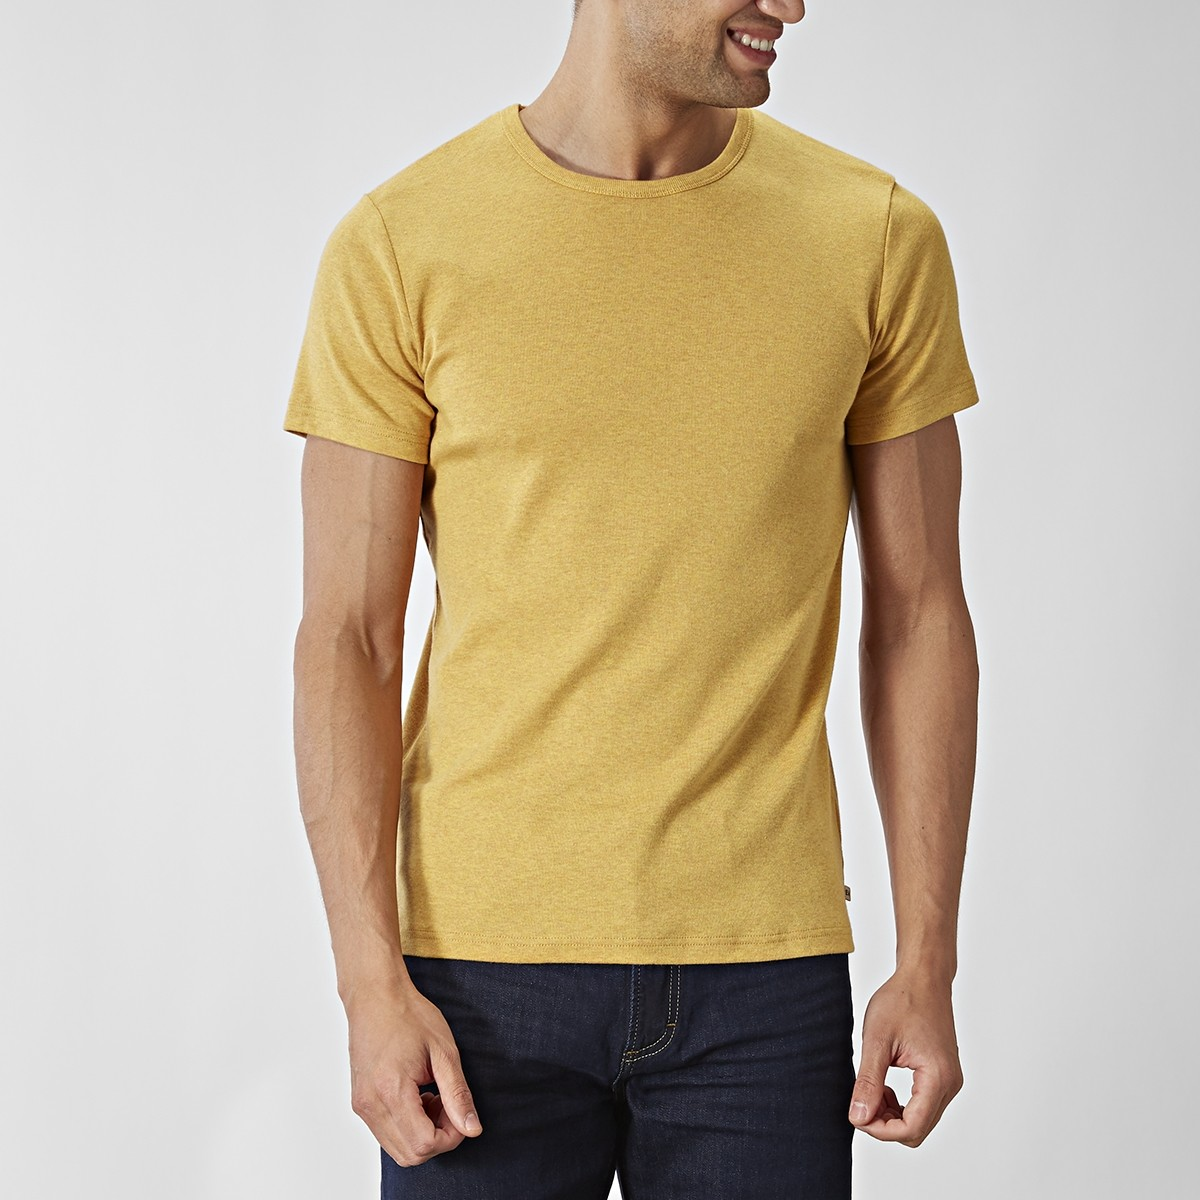 O-neck Gul T-shirt | East West | Brothers.se